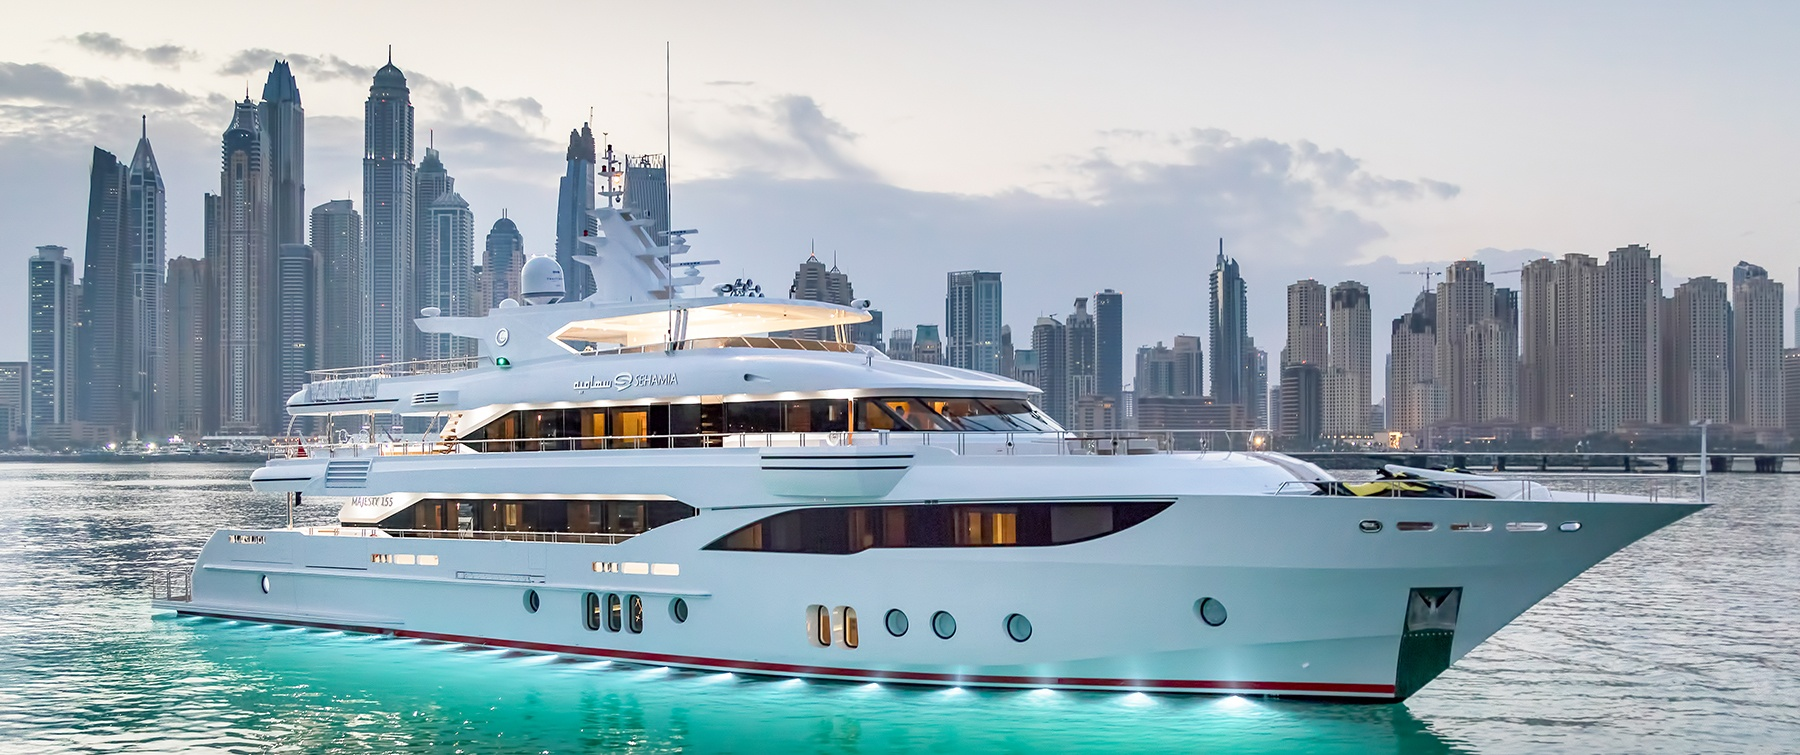 Gulf Craft | Luxury Yachts & Boat Manufacturer in Dubai, UAE